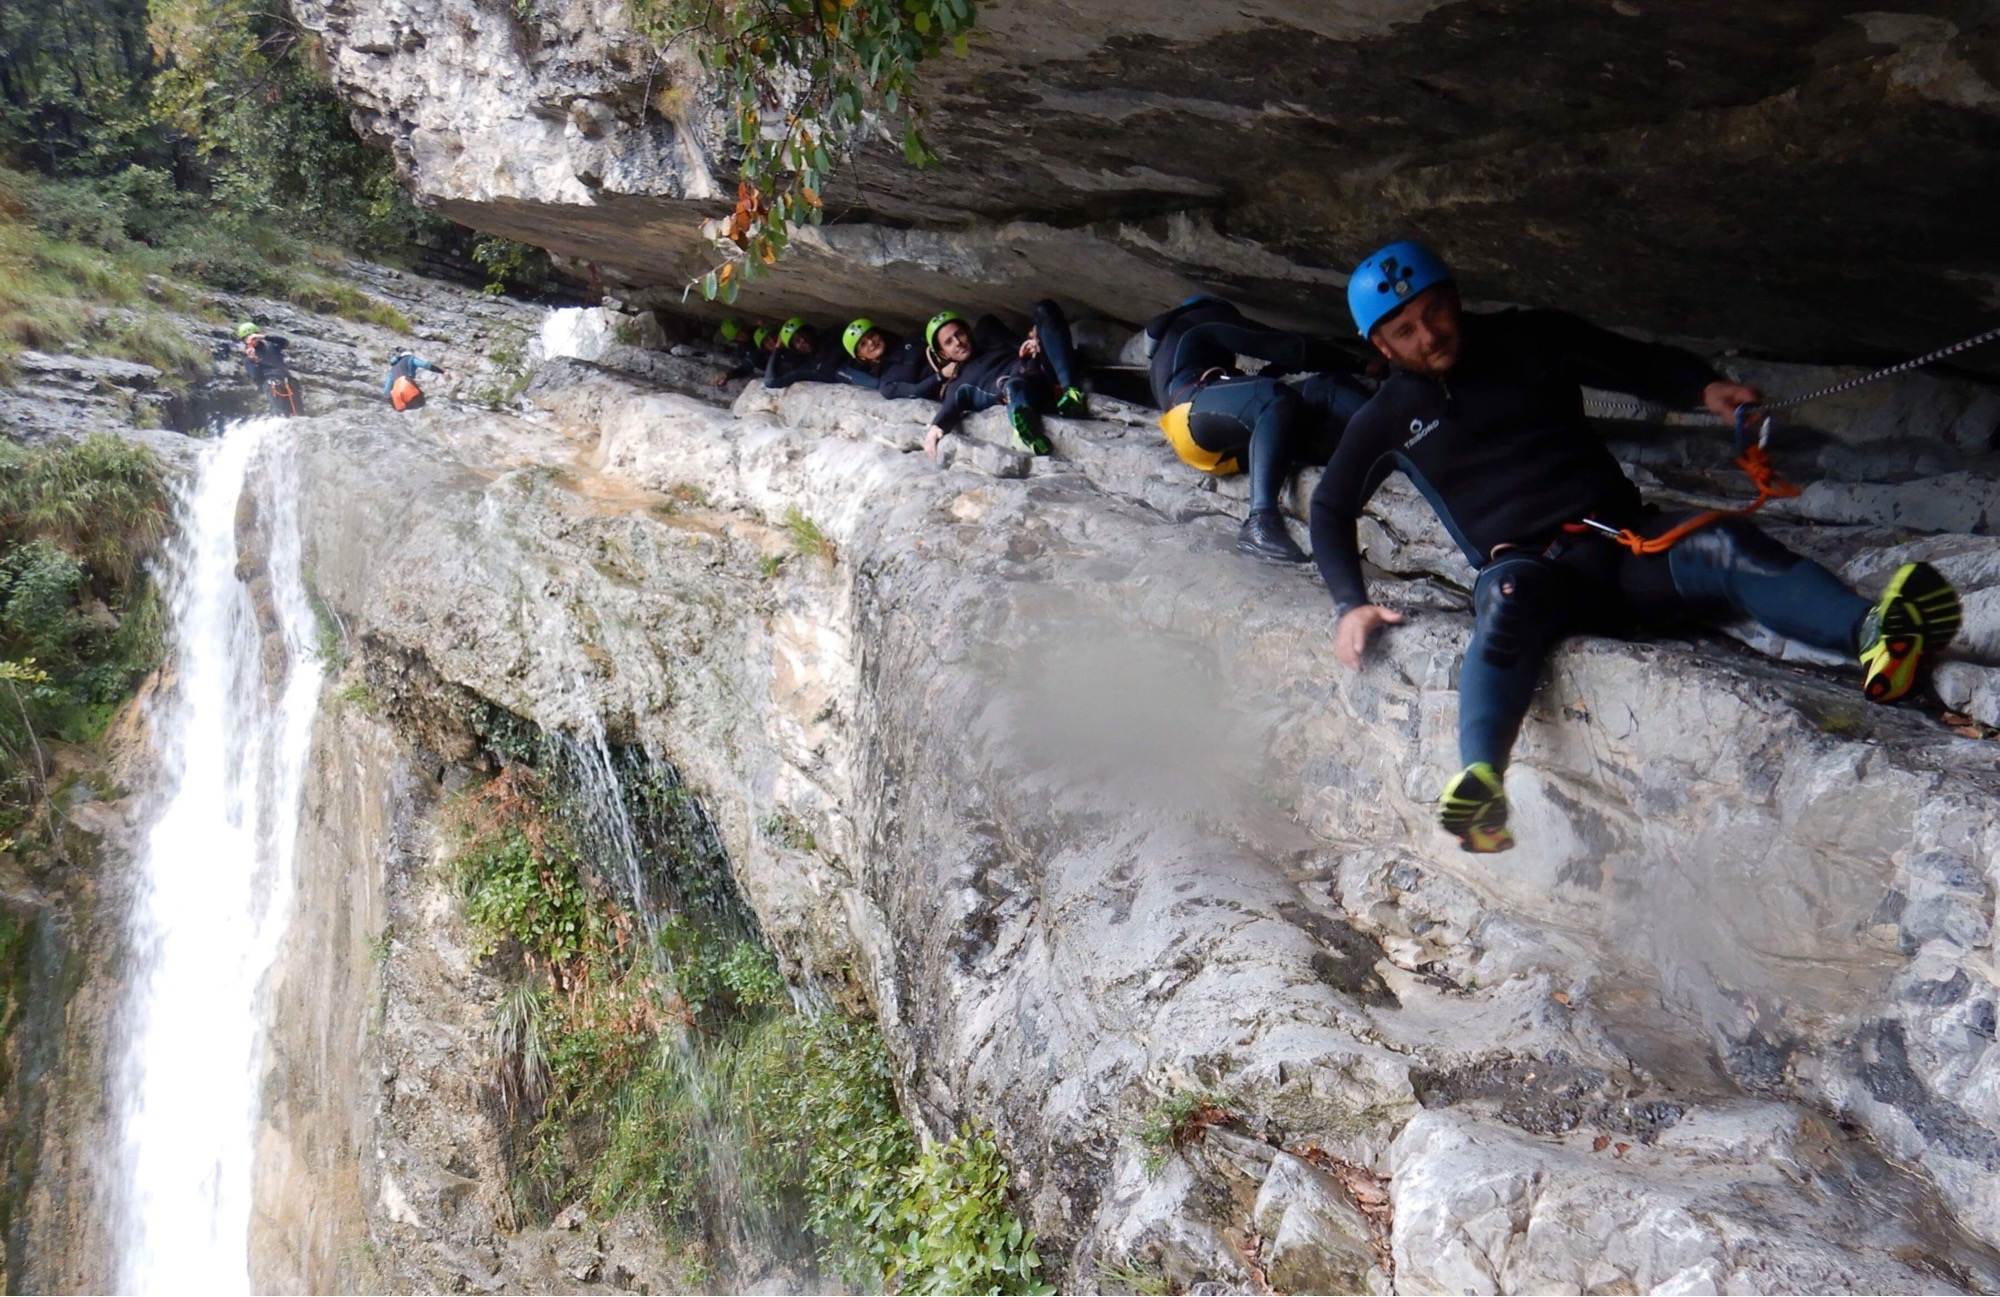 Teambuilding Canyoning experience